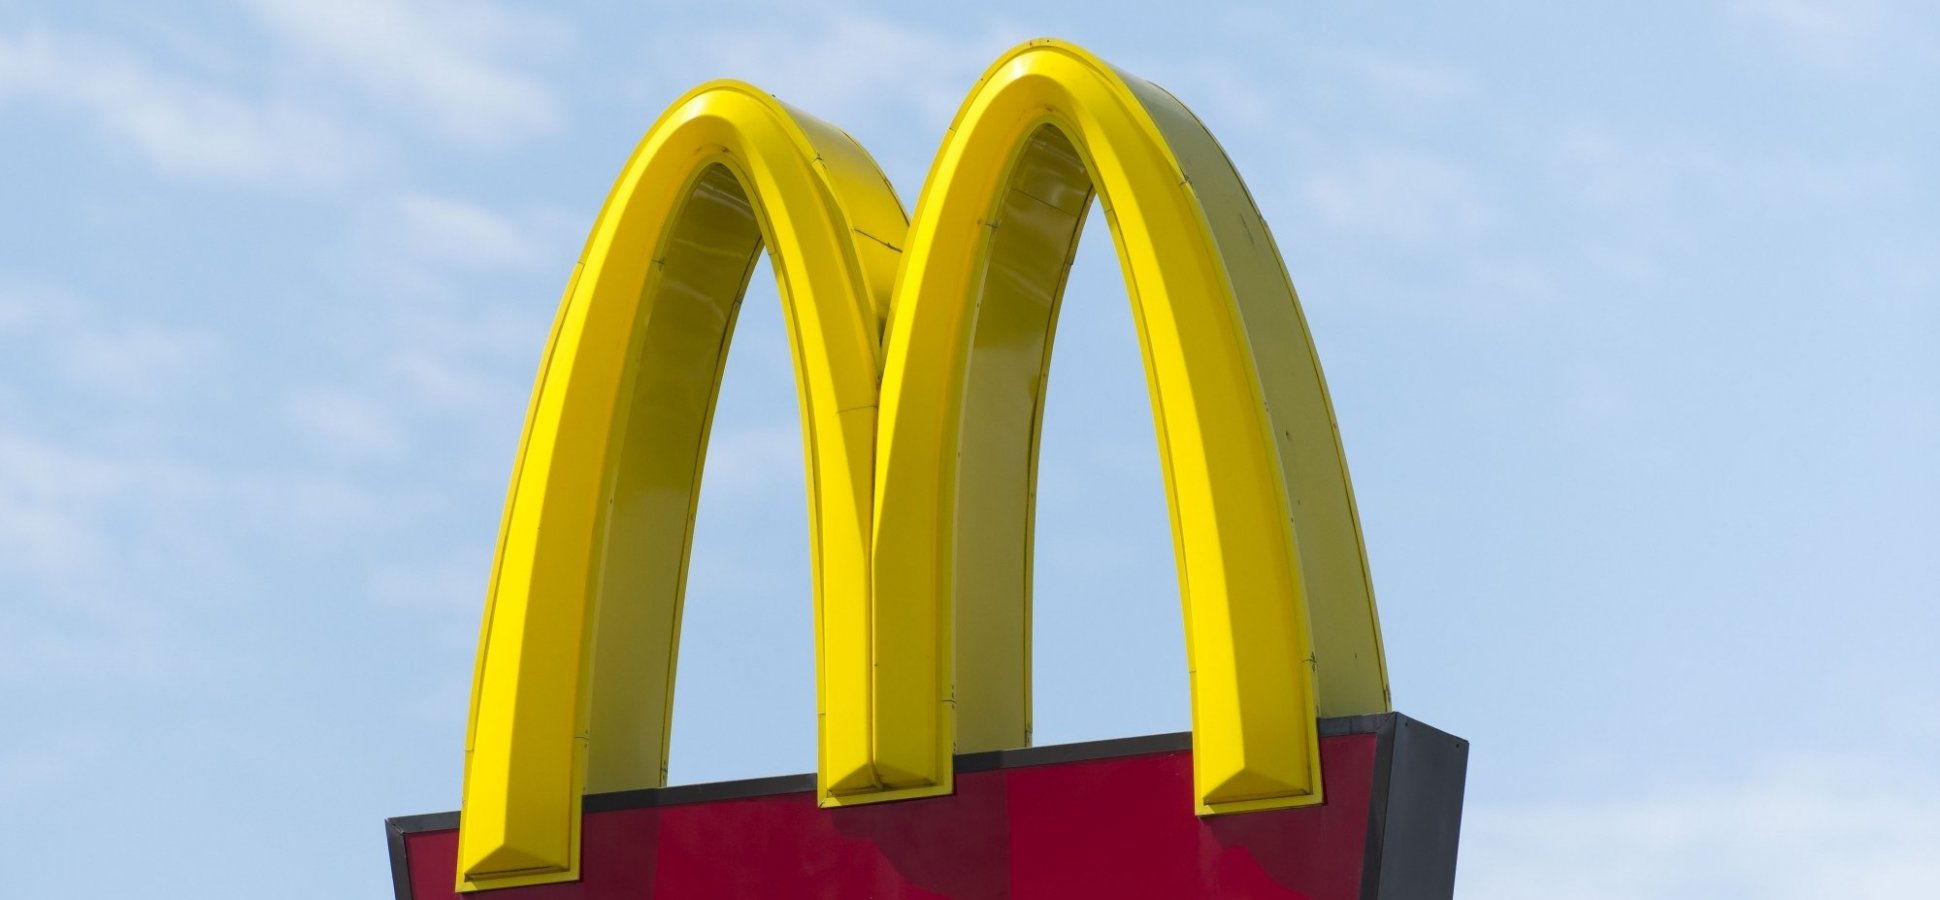 McDonald's Advertised an Astonishing New Product as an April Fool's Joke. Customers Are Outraged